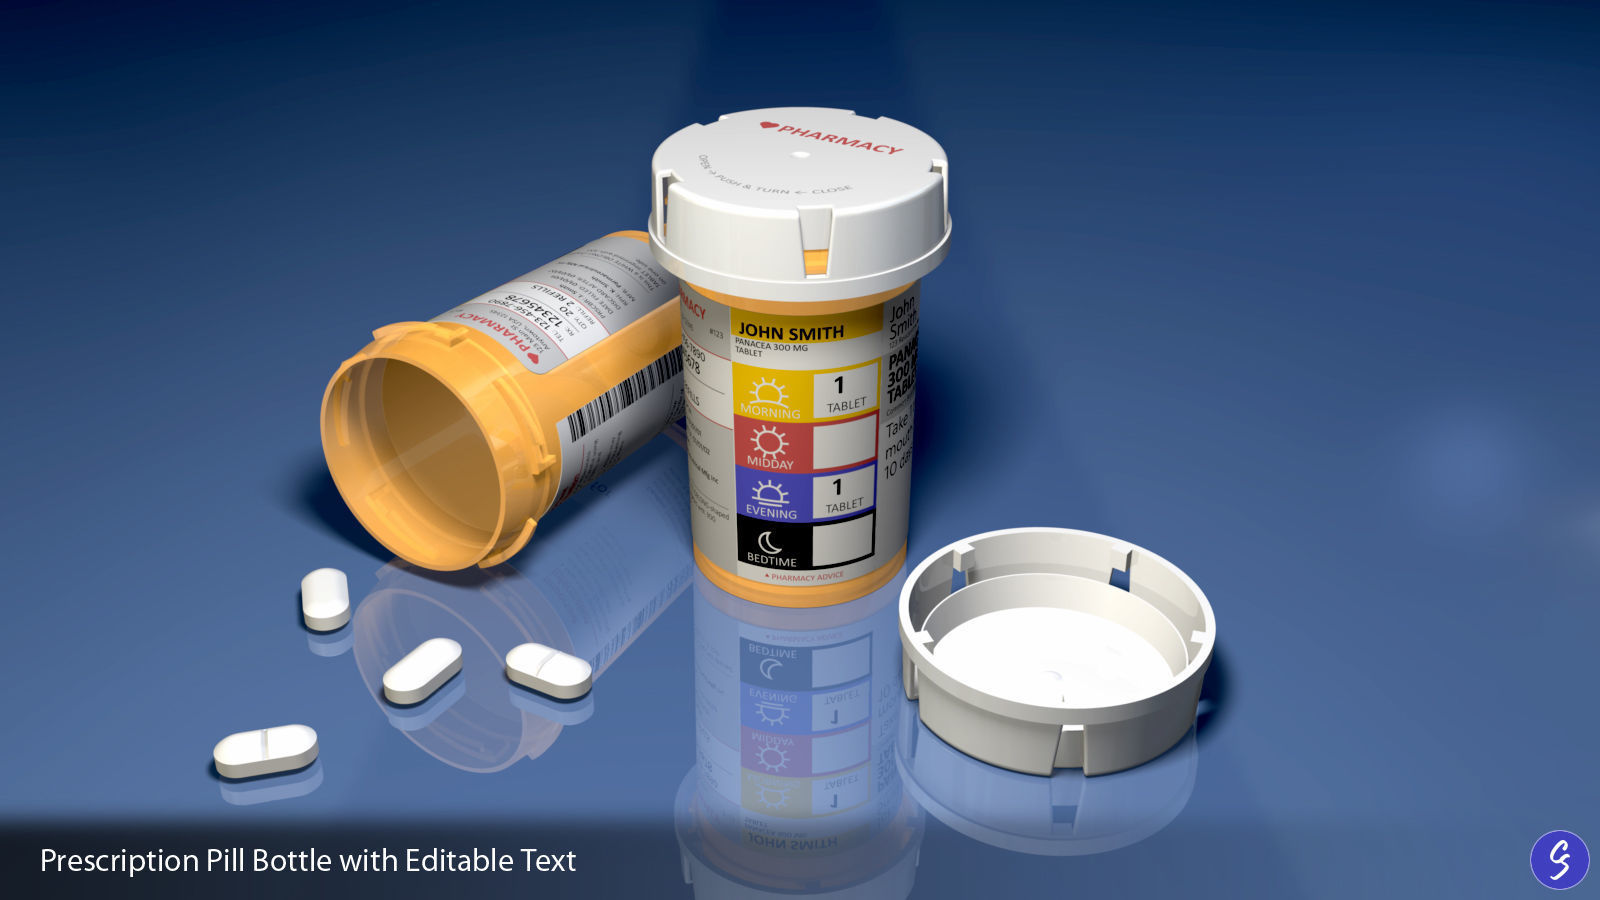 Prescription Pill Bottle with Editable Text 03